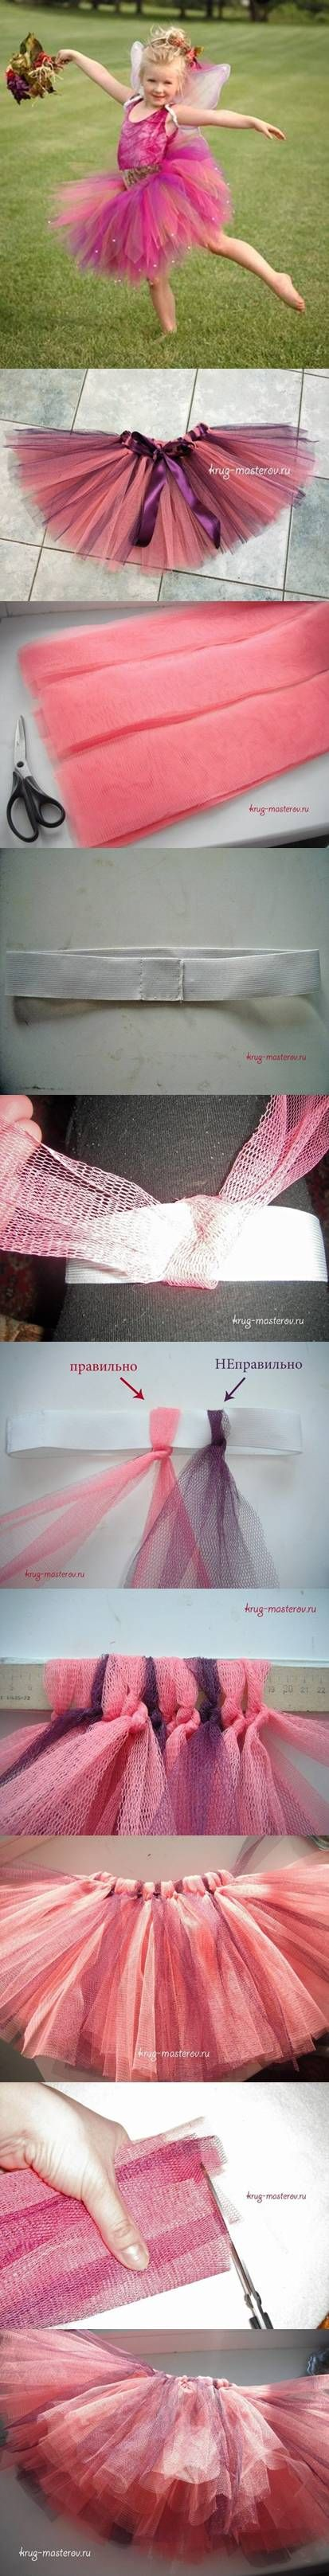 DIY Tutu Skirt for Girl Under 30 Minutes